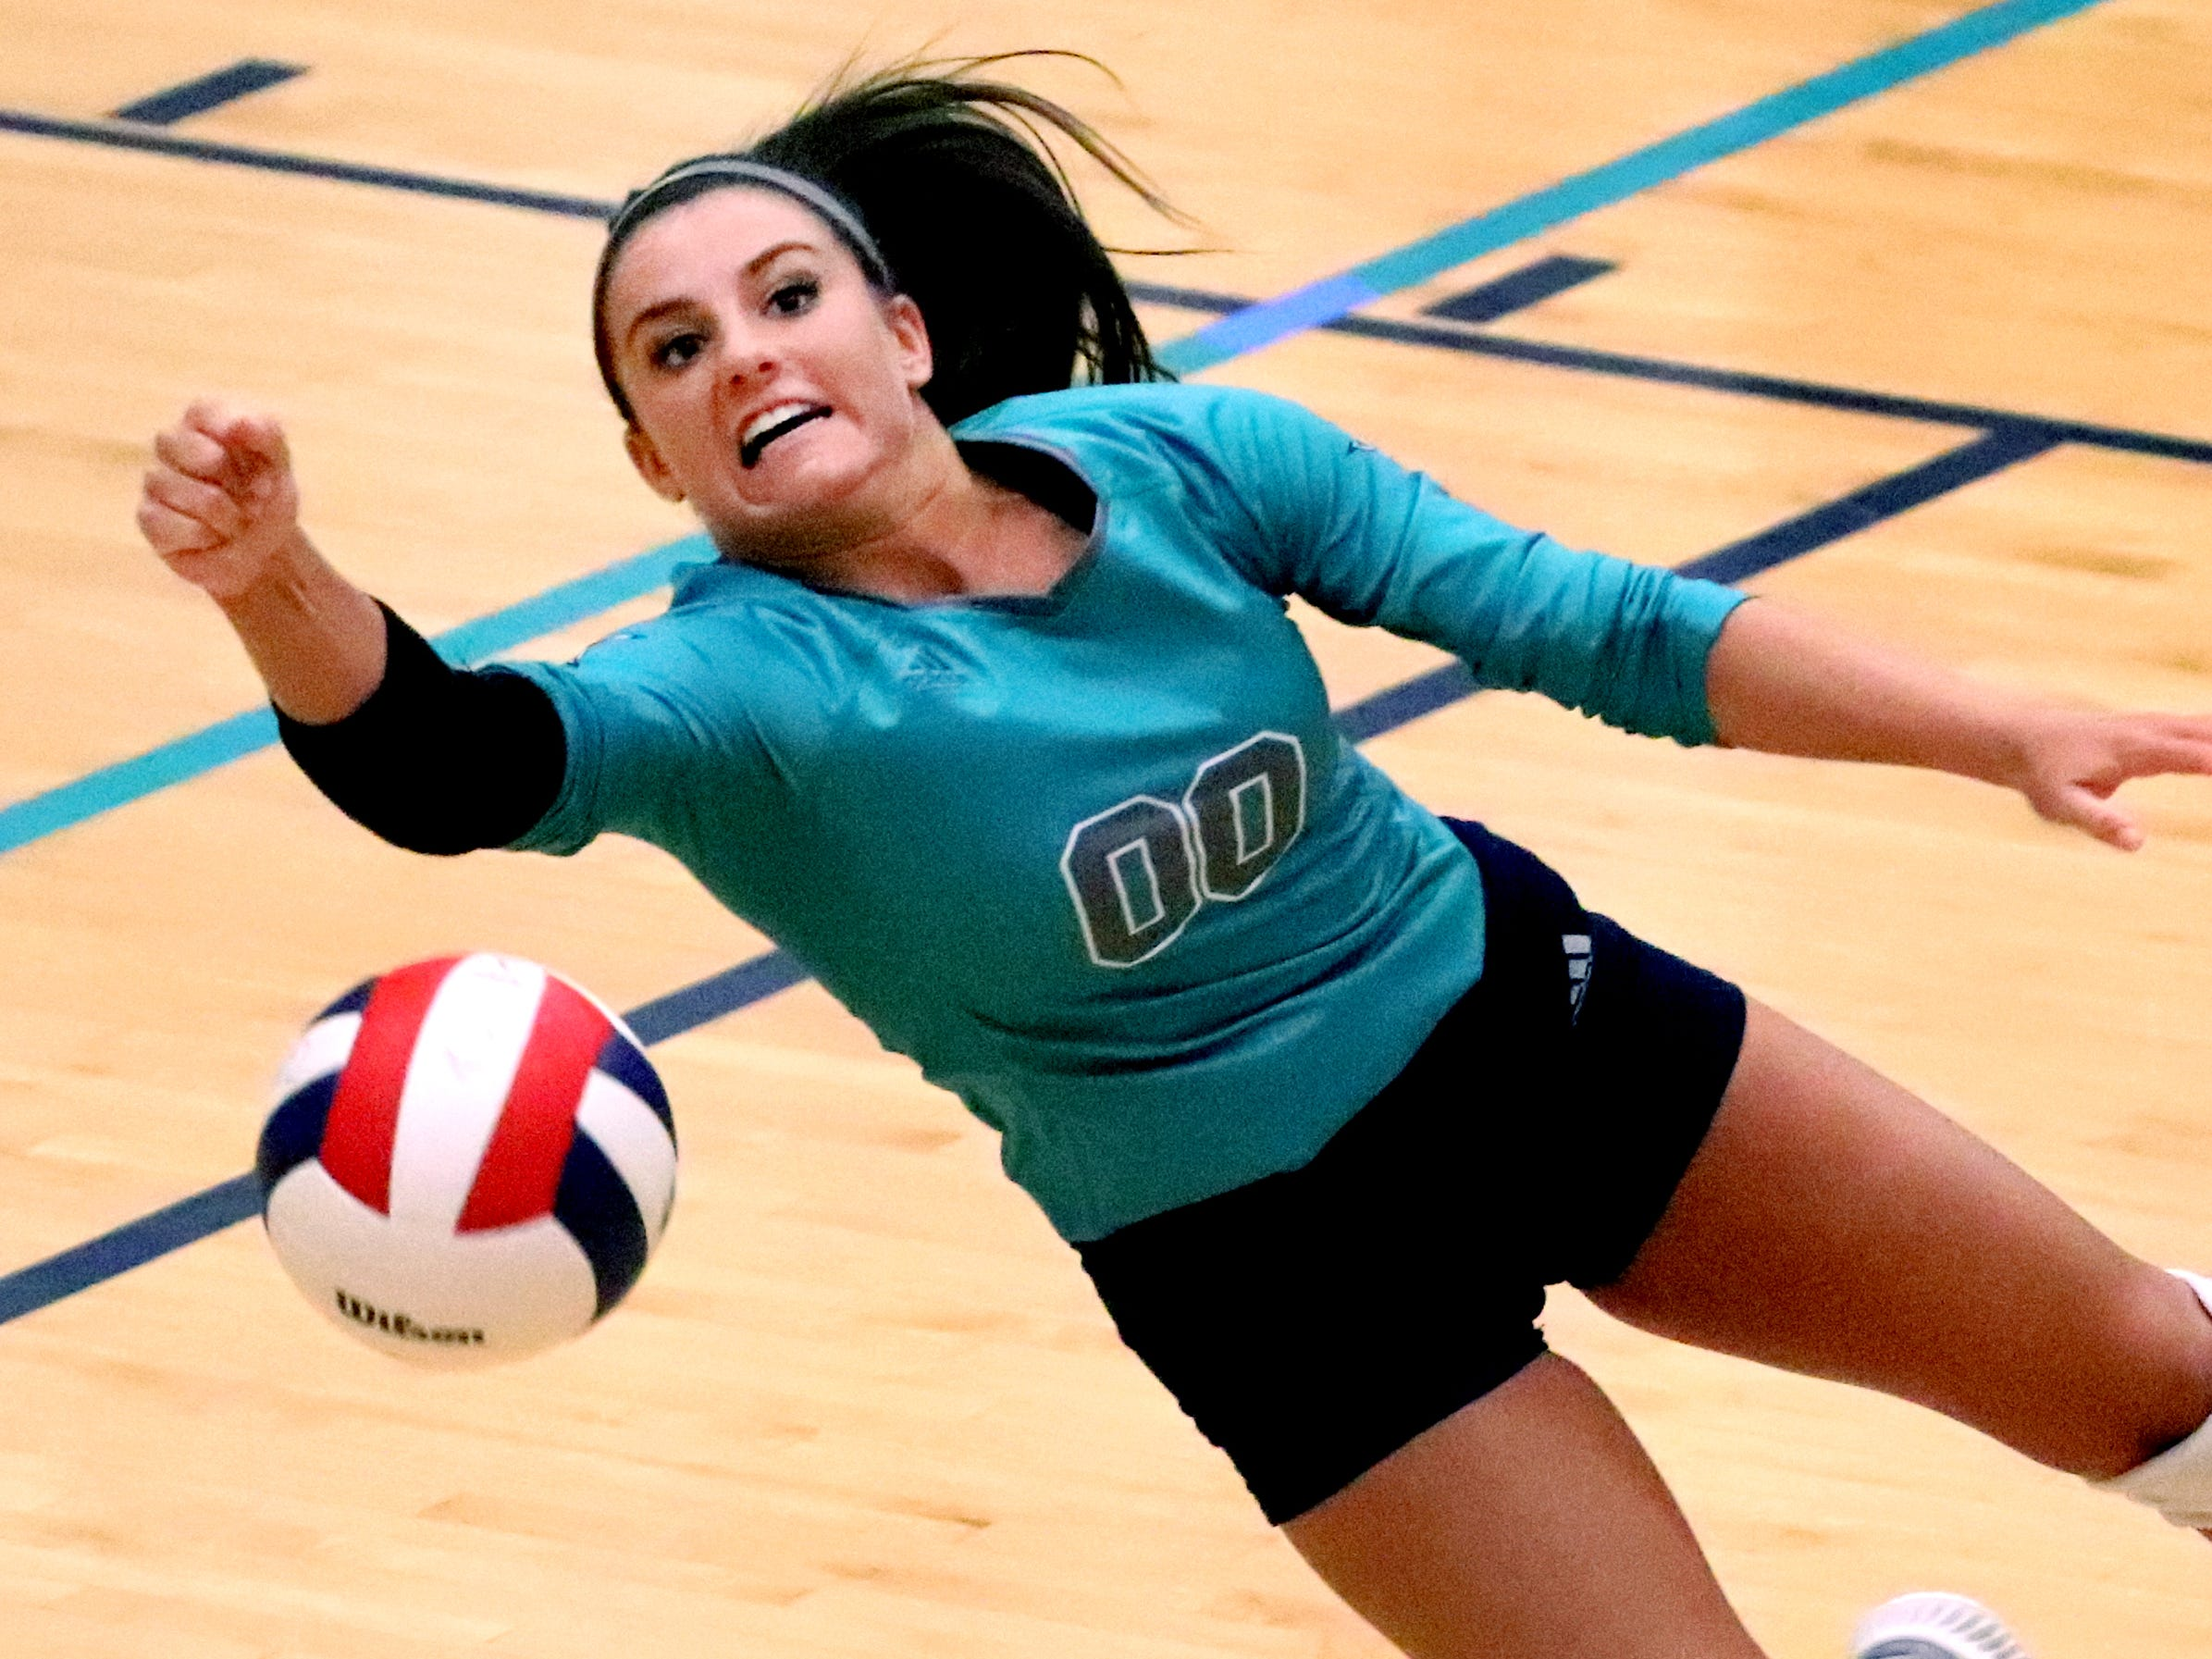 Siegel's Julia Poarch (00) goes after the ball during the Class AAA sectional against Cleveland Thursday, Oct. 11, 2018. Siegel beat Cleveland to advance to the State Championship tournament.